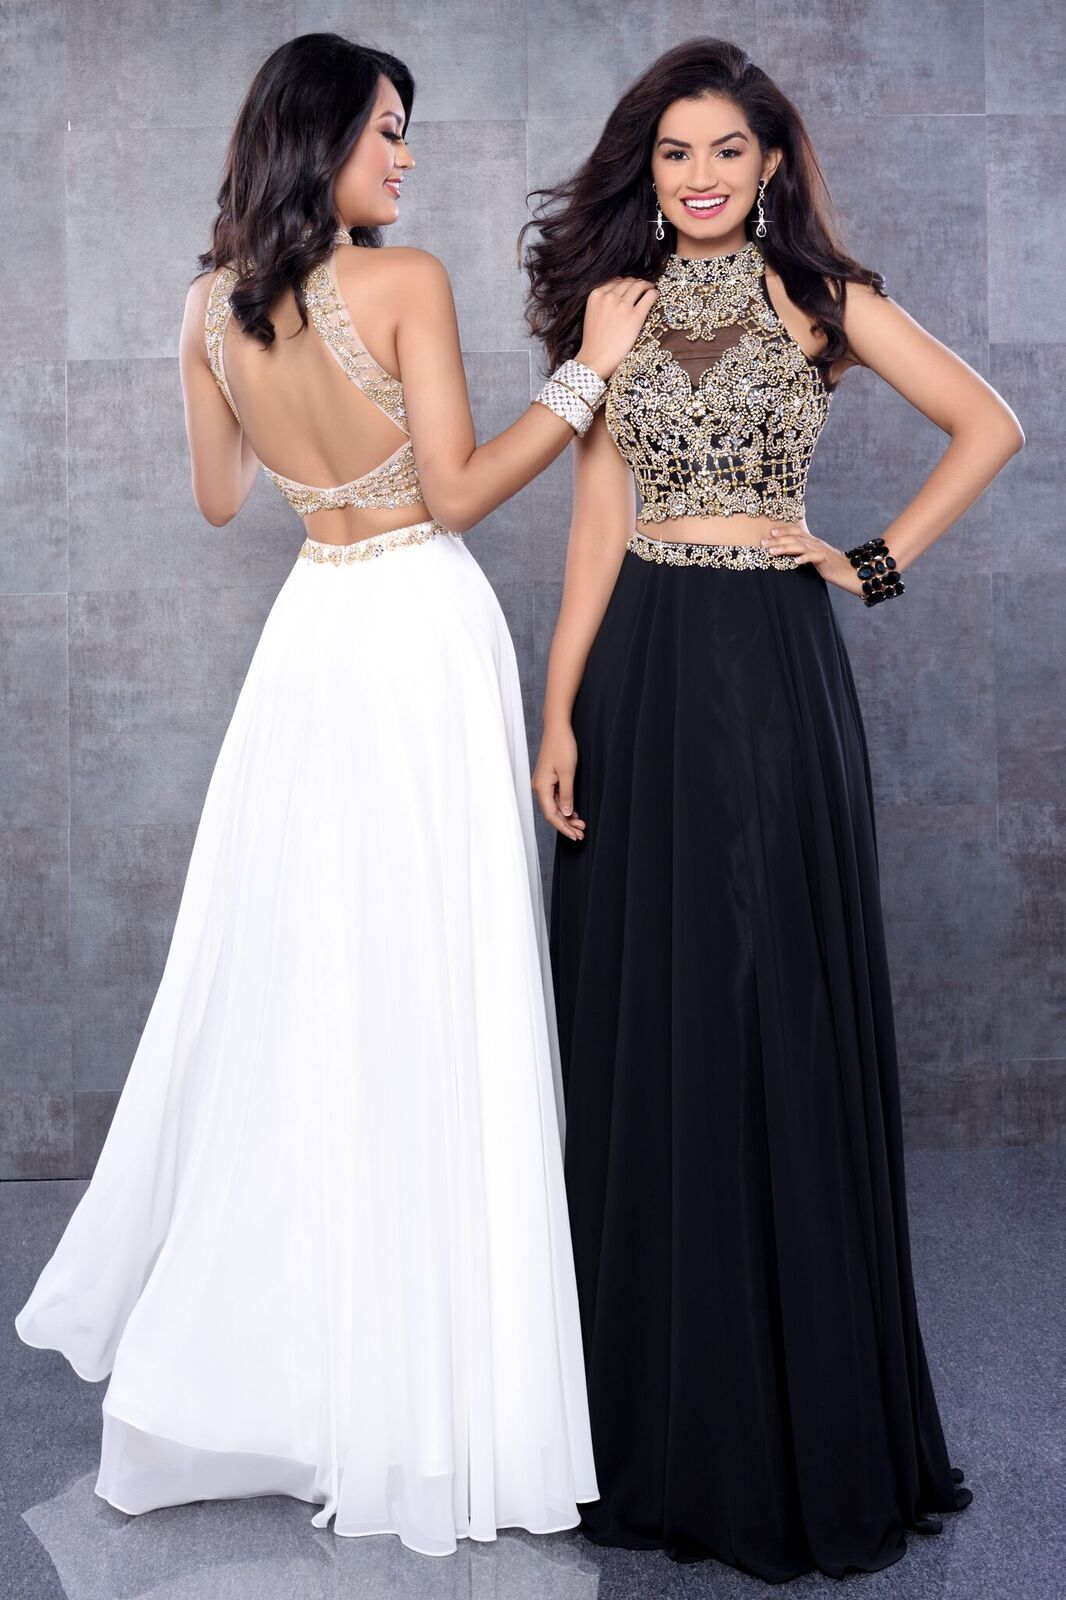 Karishma creations two piece chiffon skirt prom dress with fully